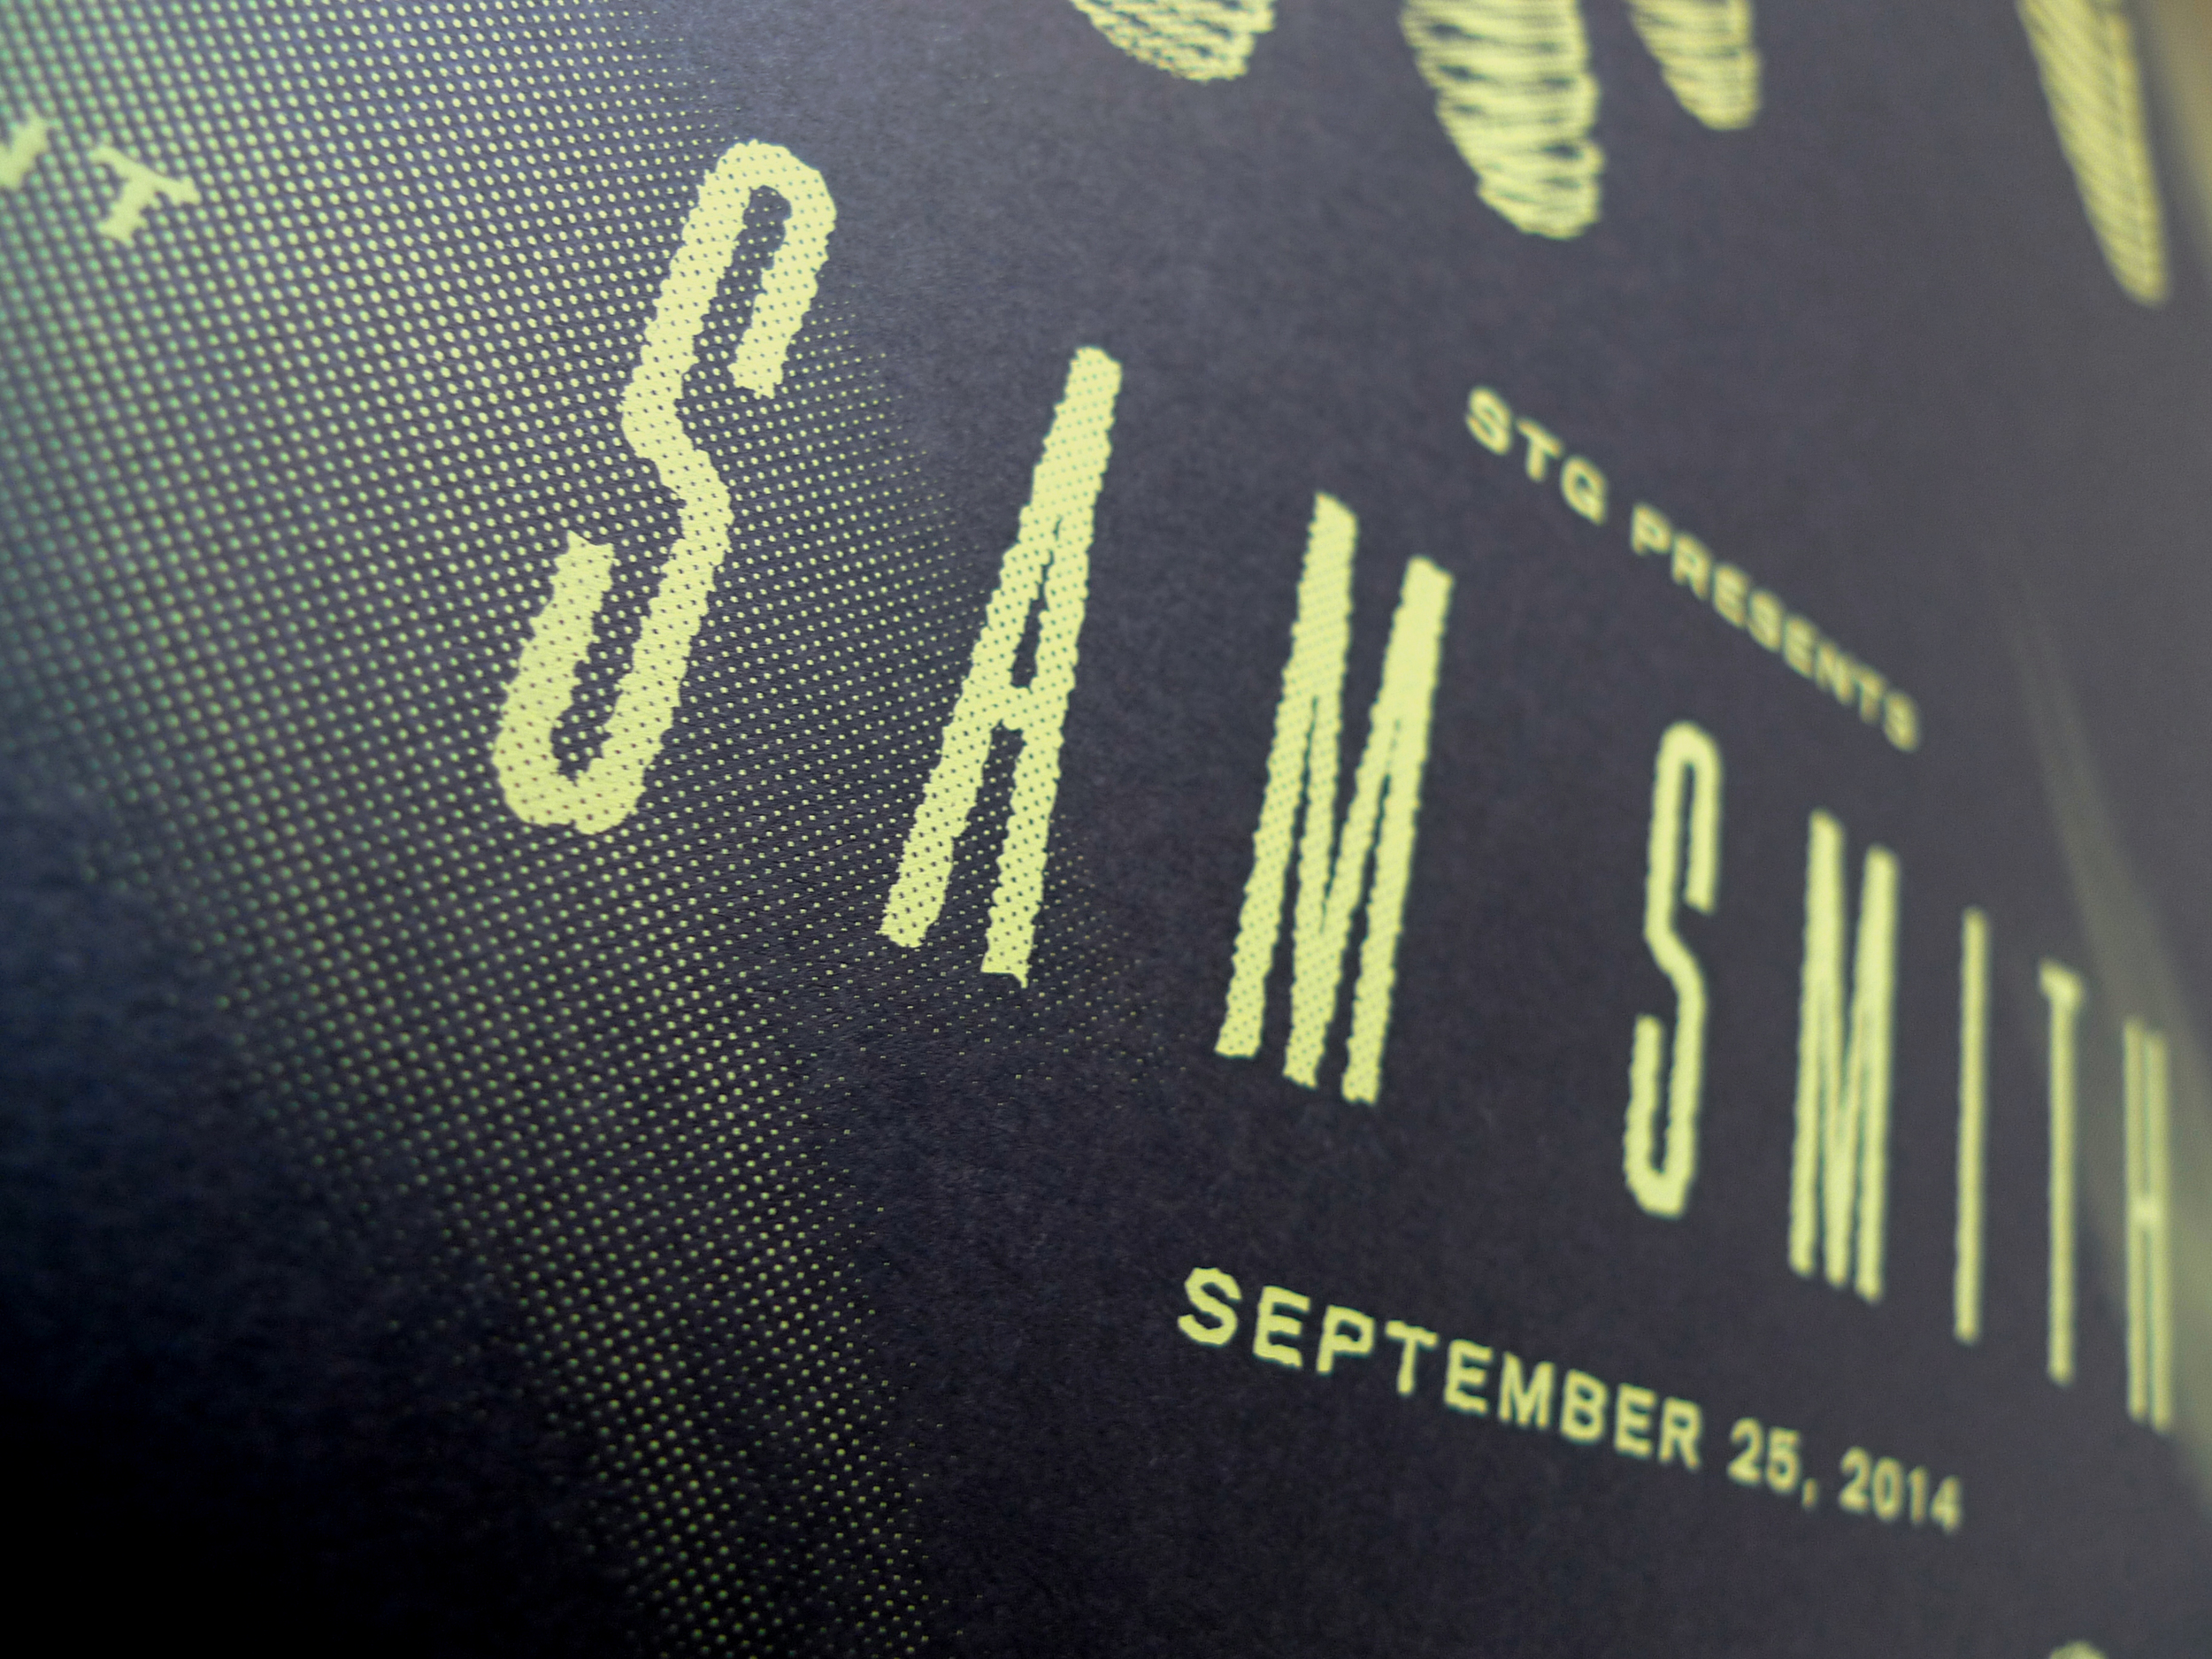 Sam Smith Poster by DKNG